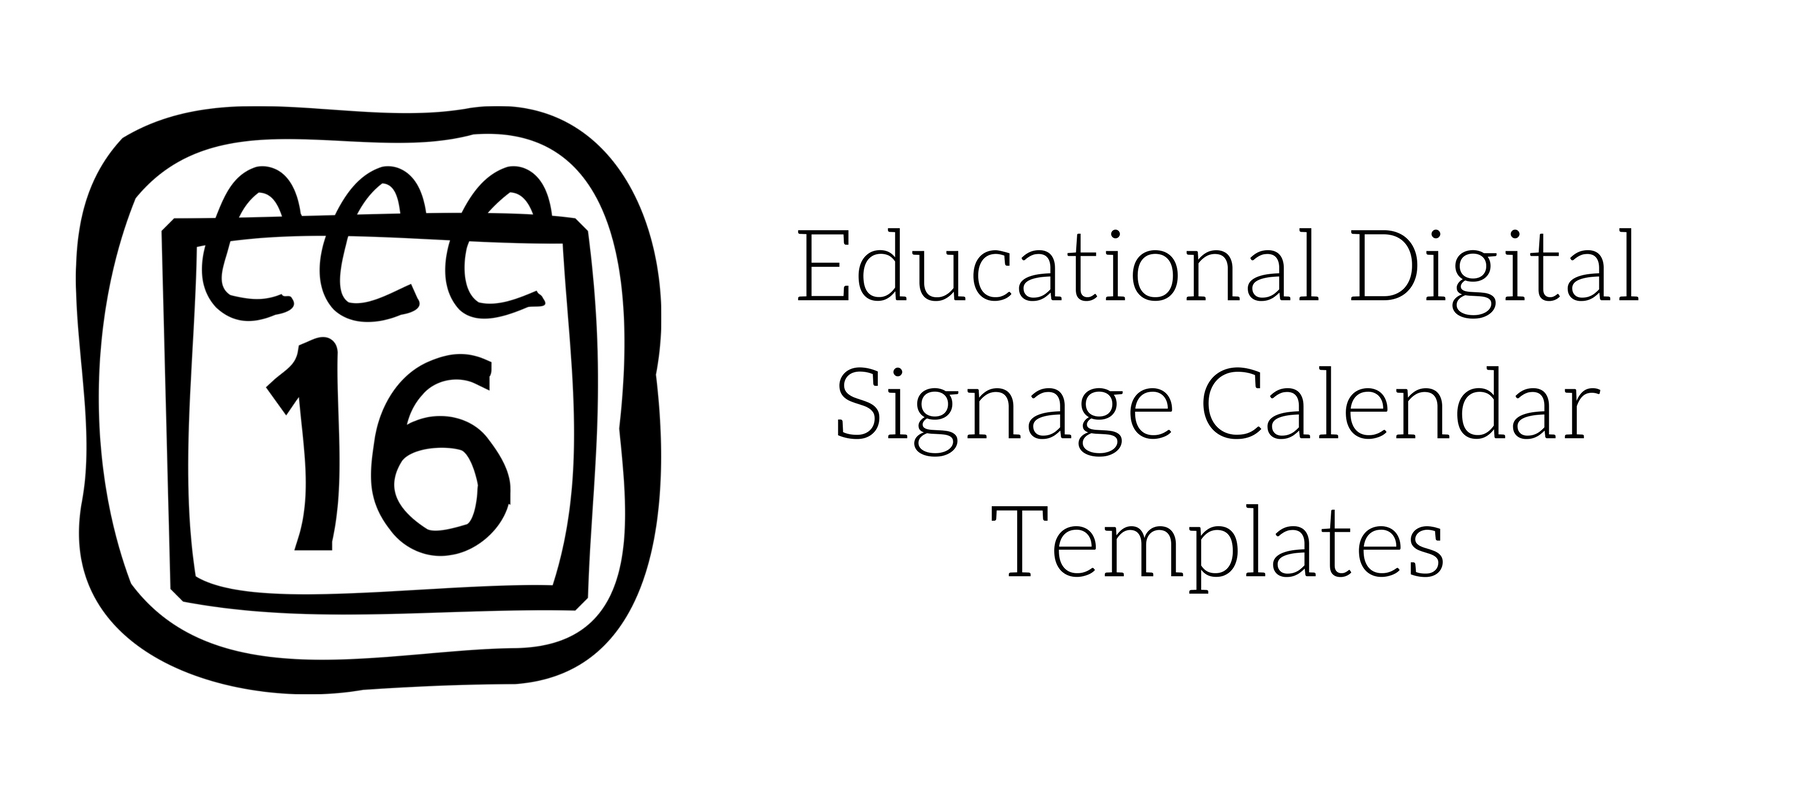 Educational Digital Signage Calendar Templates